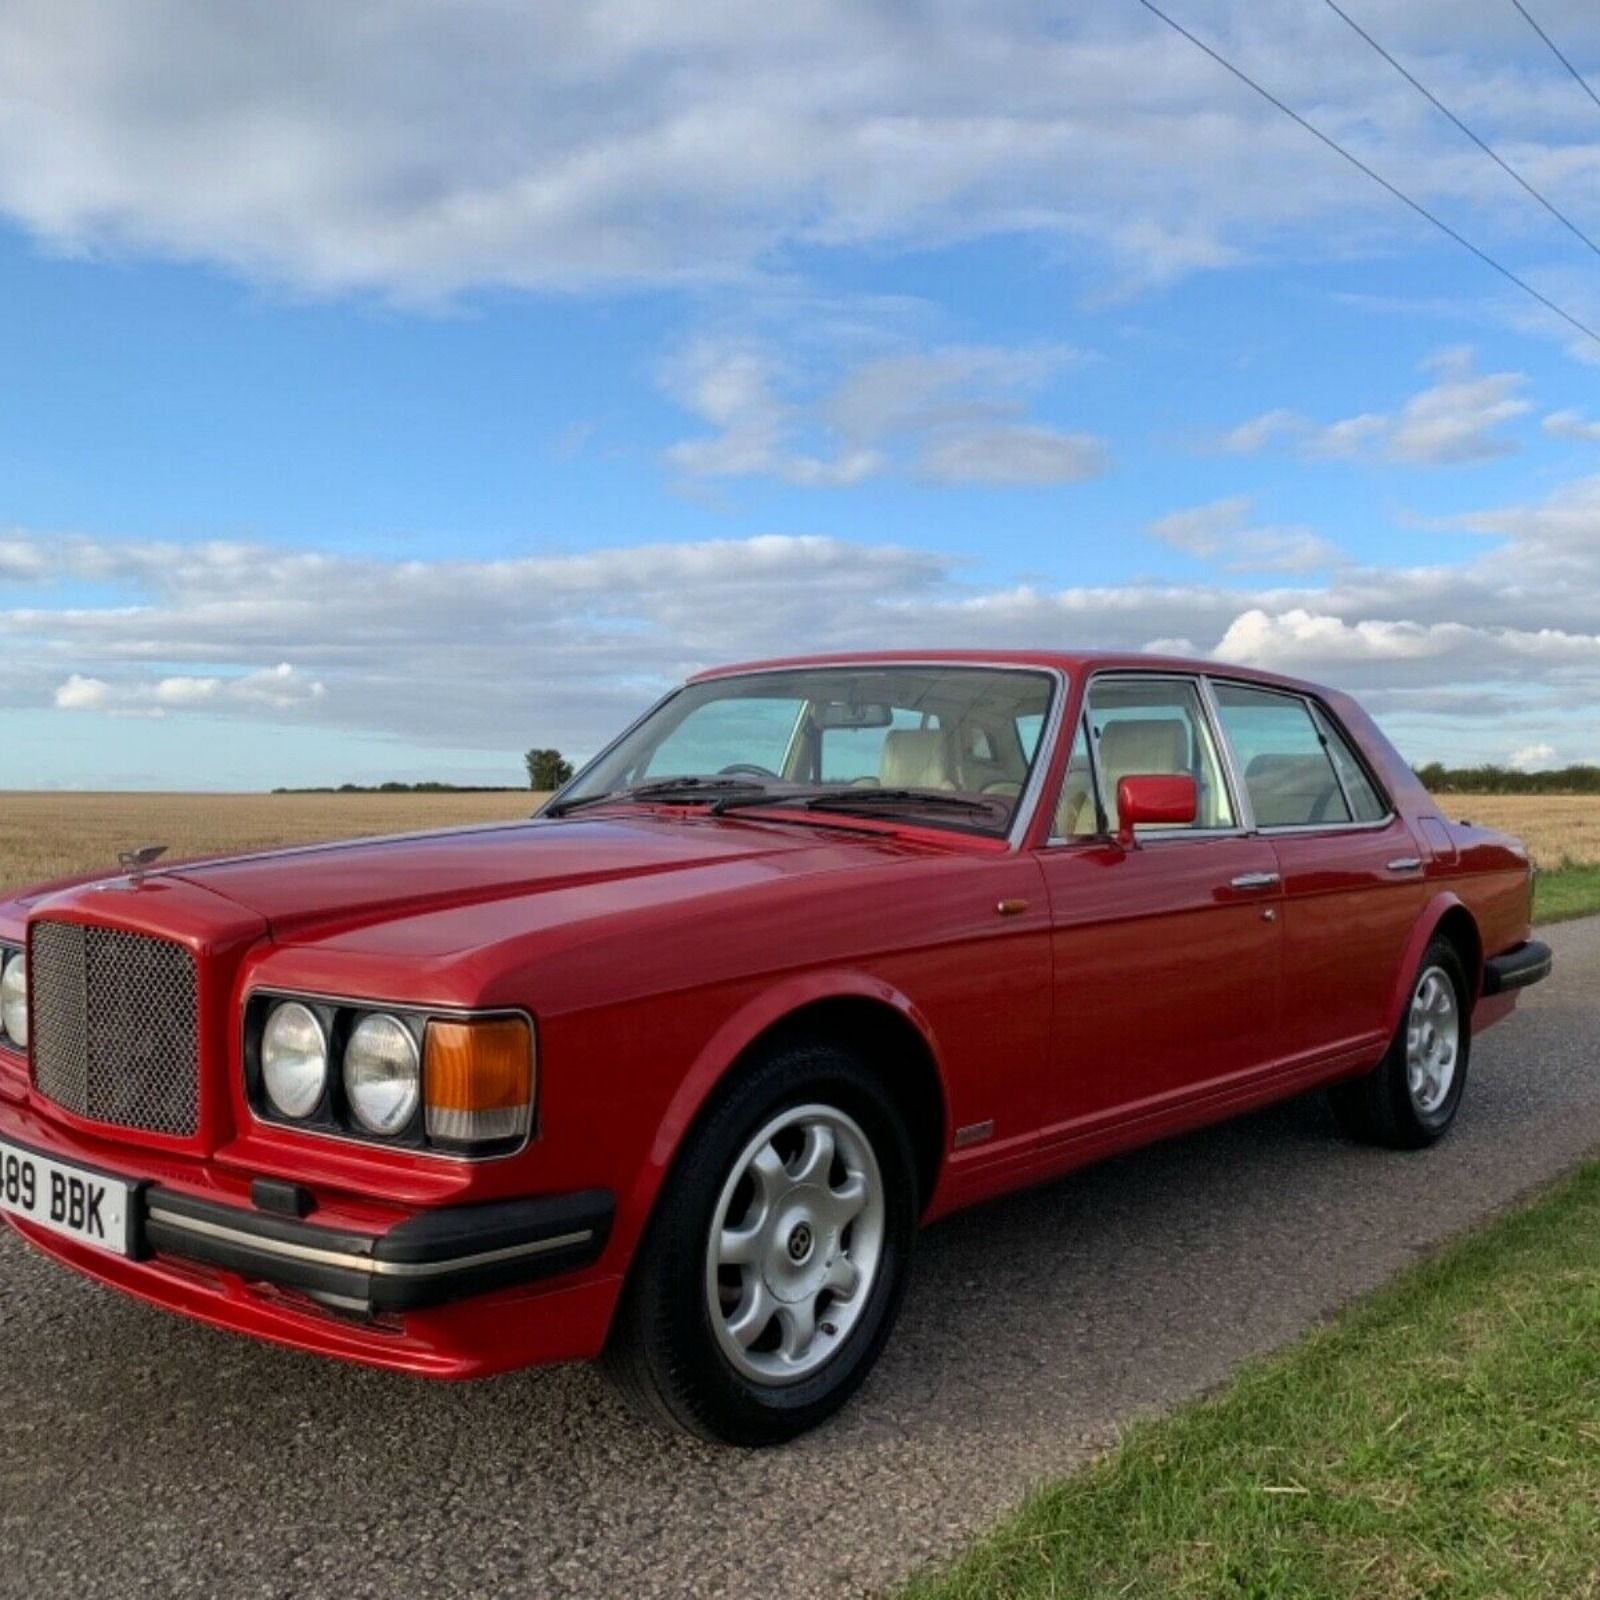 This Bentley Turbo R is an absolute bargain at just £3.5k